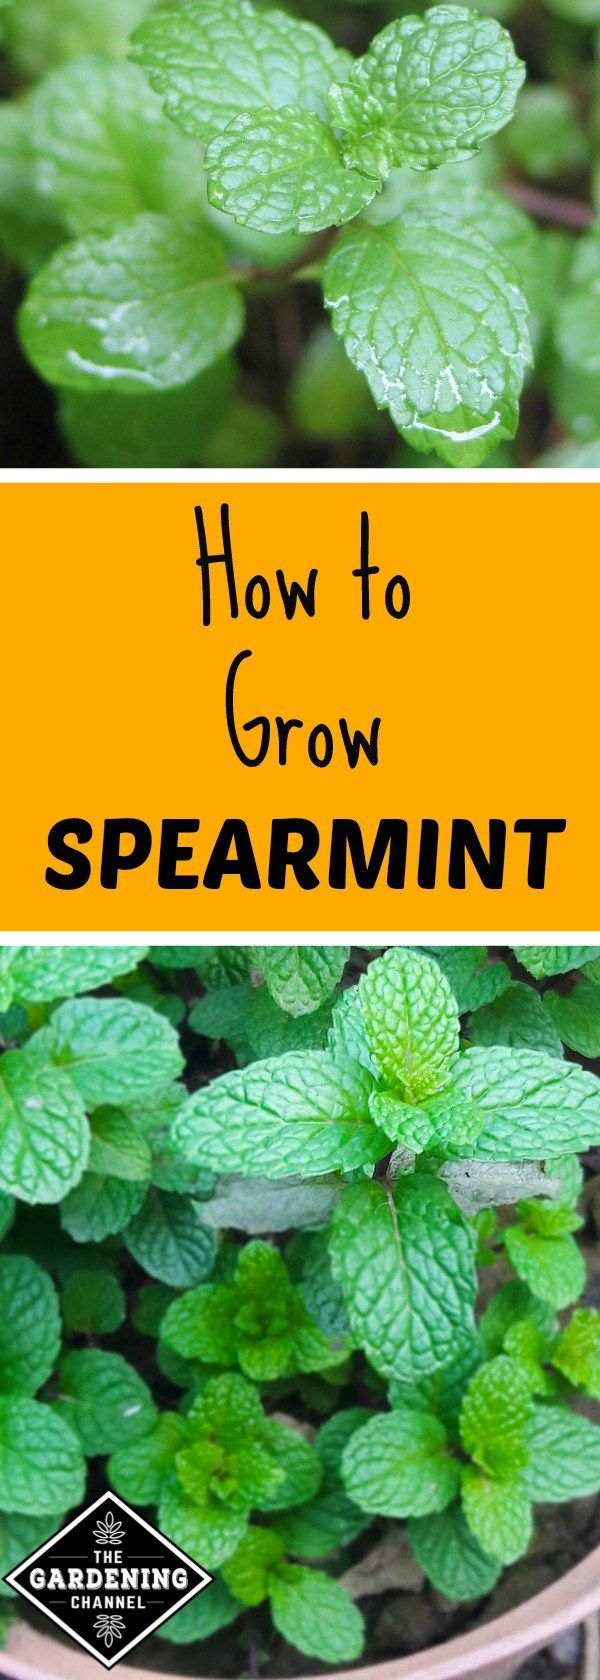 Learn how to grow spearmint in the herb garden. Spearmint is commonly used medicinally to reduce effects of irritable bowel syndrome, motion sickness, hiccups and nausea, as well as other ailments. It is also a staple of the culinary arts, usually used to flavor meat, fish and vegetable dishes.